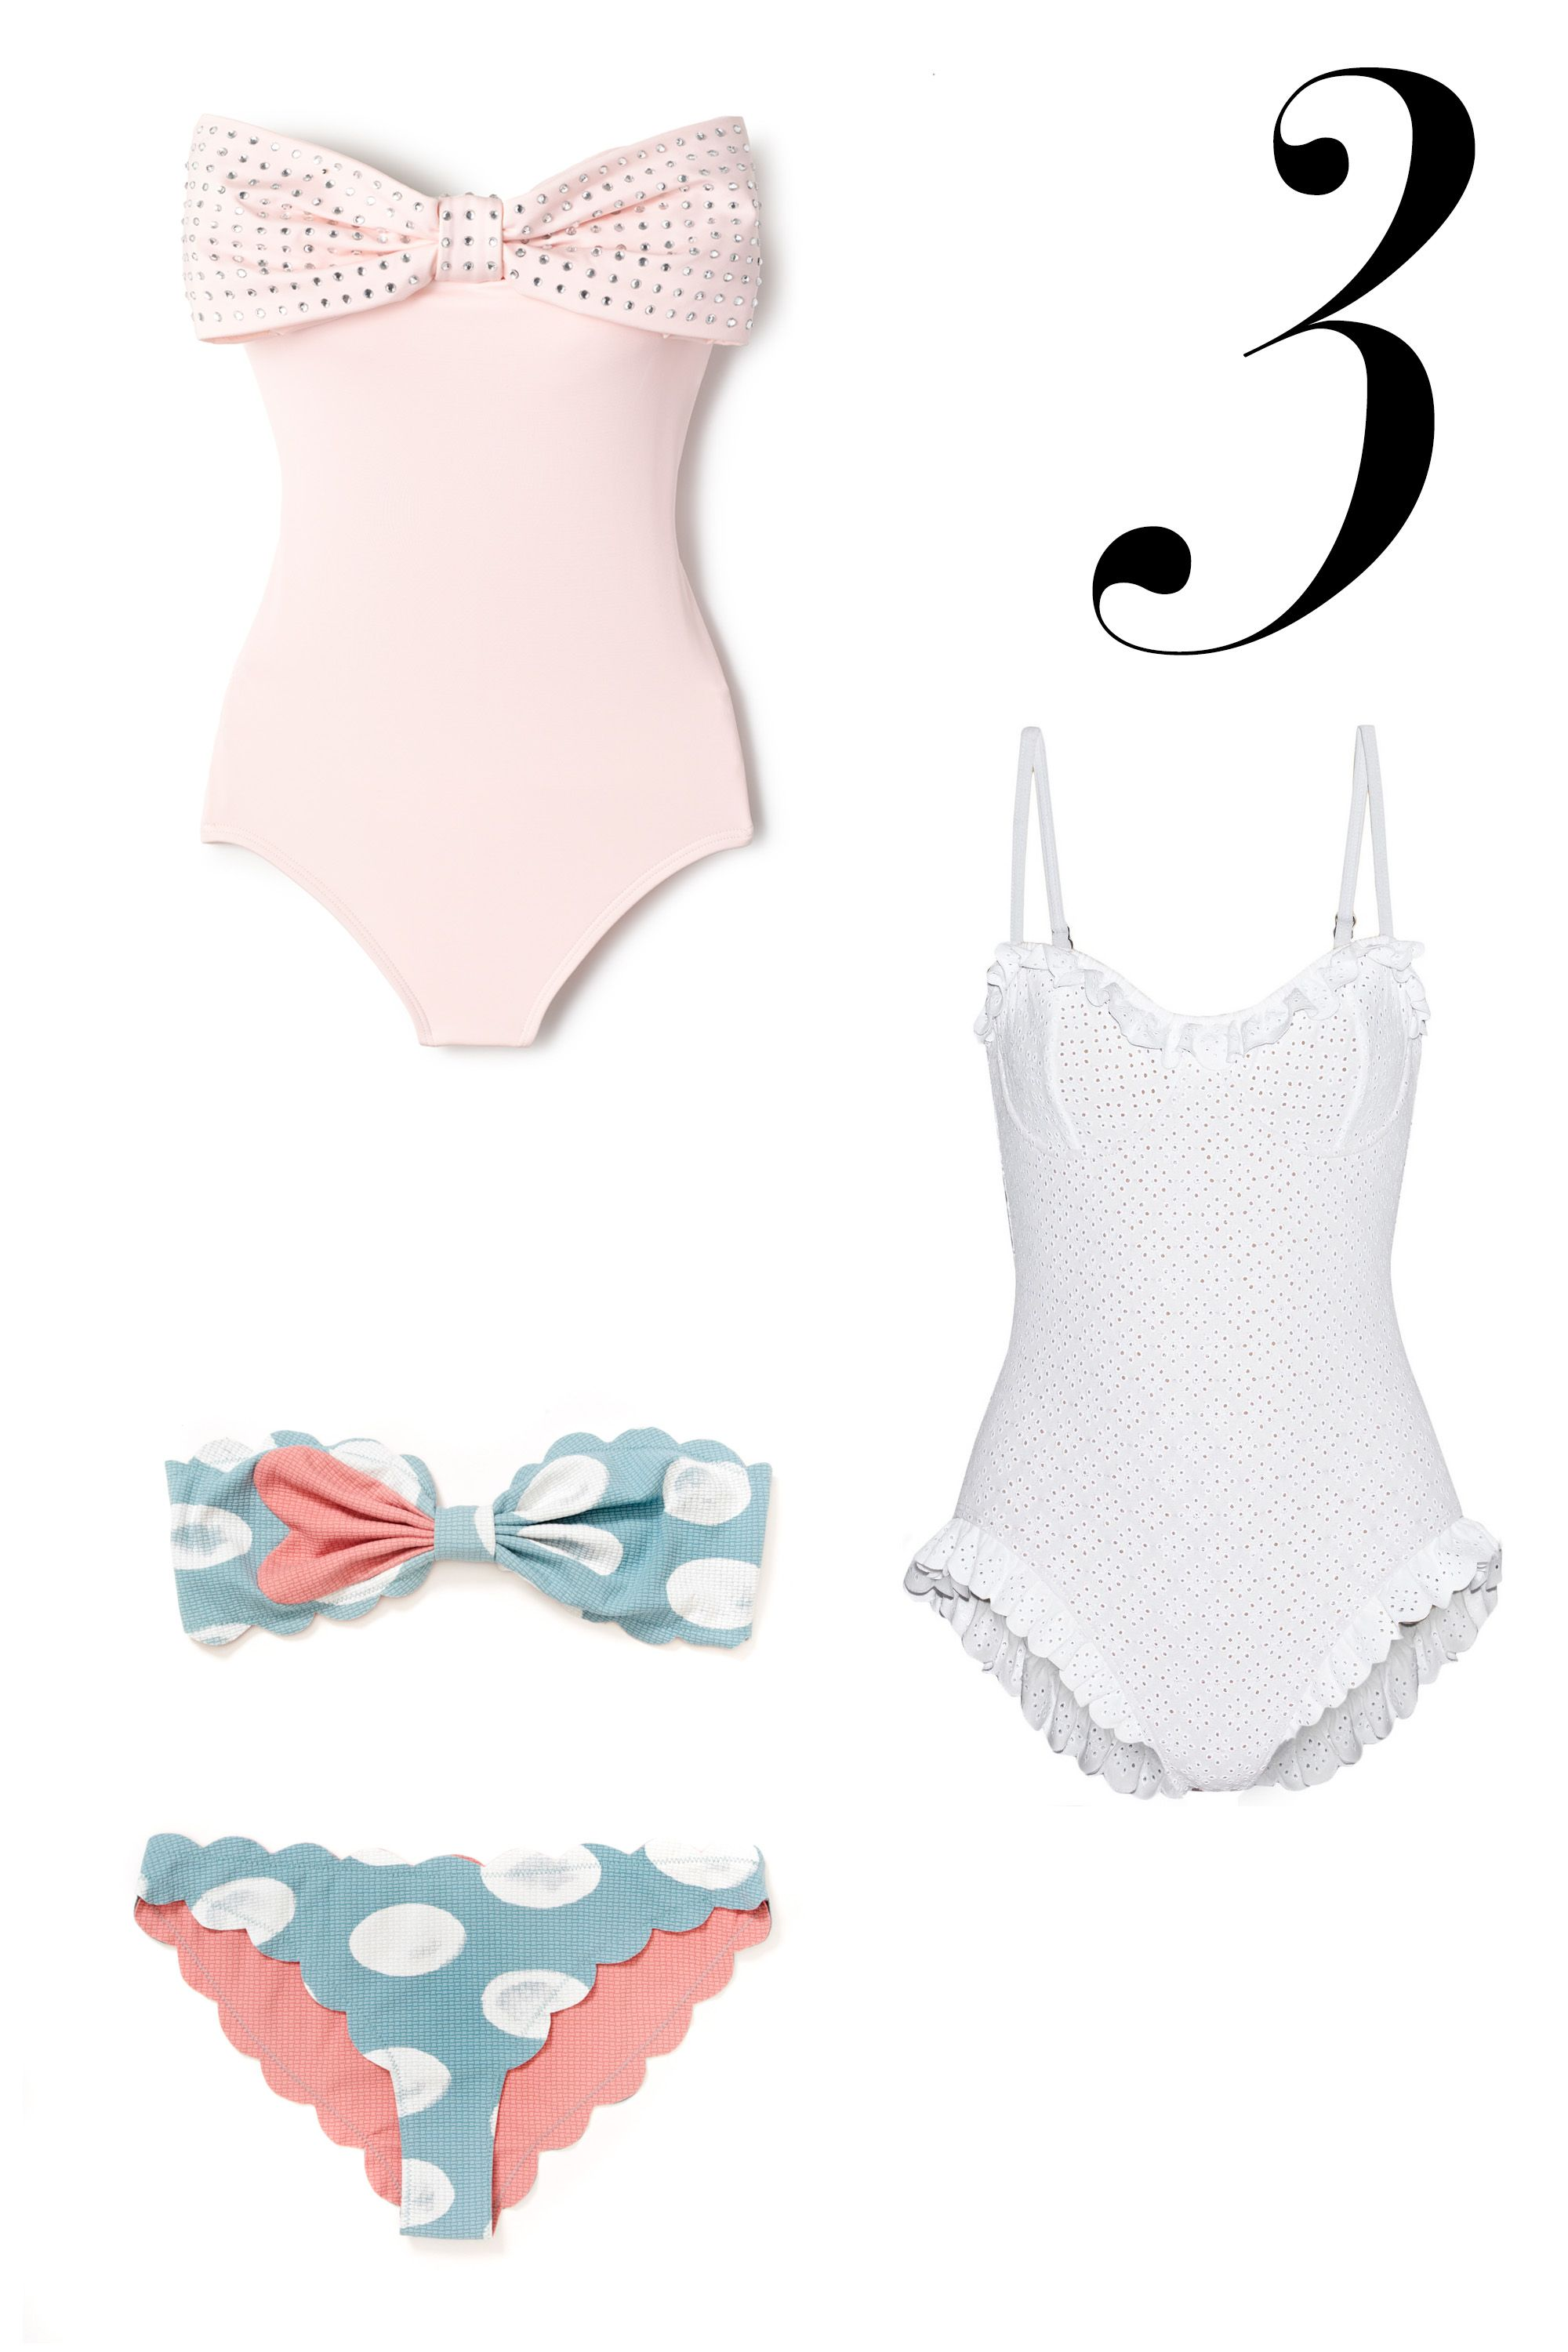 "For the girlish romantic, these suits are pretty in pink or white lace for a welcome feminine wink.  <em>Kate Spade suit, $173, </em><a target=""_blank"" href=""http://www.everythingbutwater.com/swimwear/browse/category/one-piece.html?page=1&filters=5771;&sizes=&colors=&prices=0;10000&limit=48&base=;88;2790""><em>everythingbutwater.com</em></a><em>; Marysia suit, $139, <a target=""_blank"" href=""http://marysiaswim.com/product/i-heart-antibes/"">marysiaswim.com</a>; Michael Kors suit, $360, <a target=""_blank"" href=""http://www.net-a-porter.com/us/en/product/534975"">net-a-porter.com</a></em>"